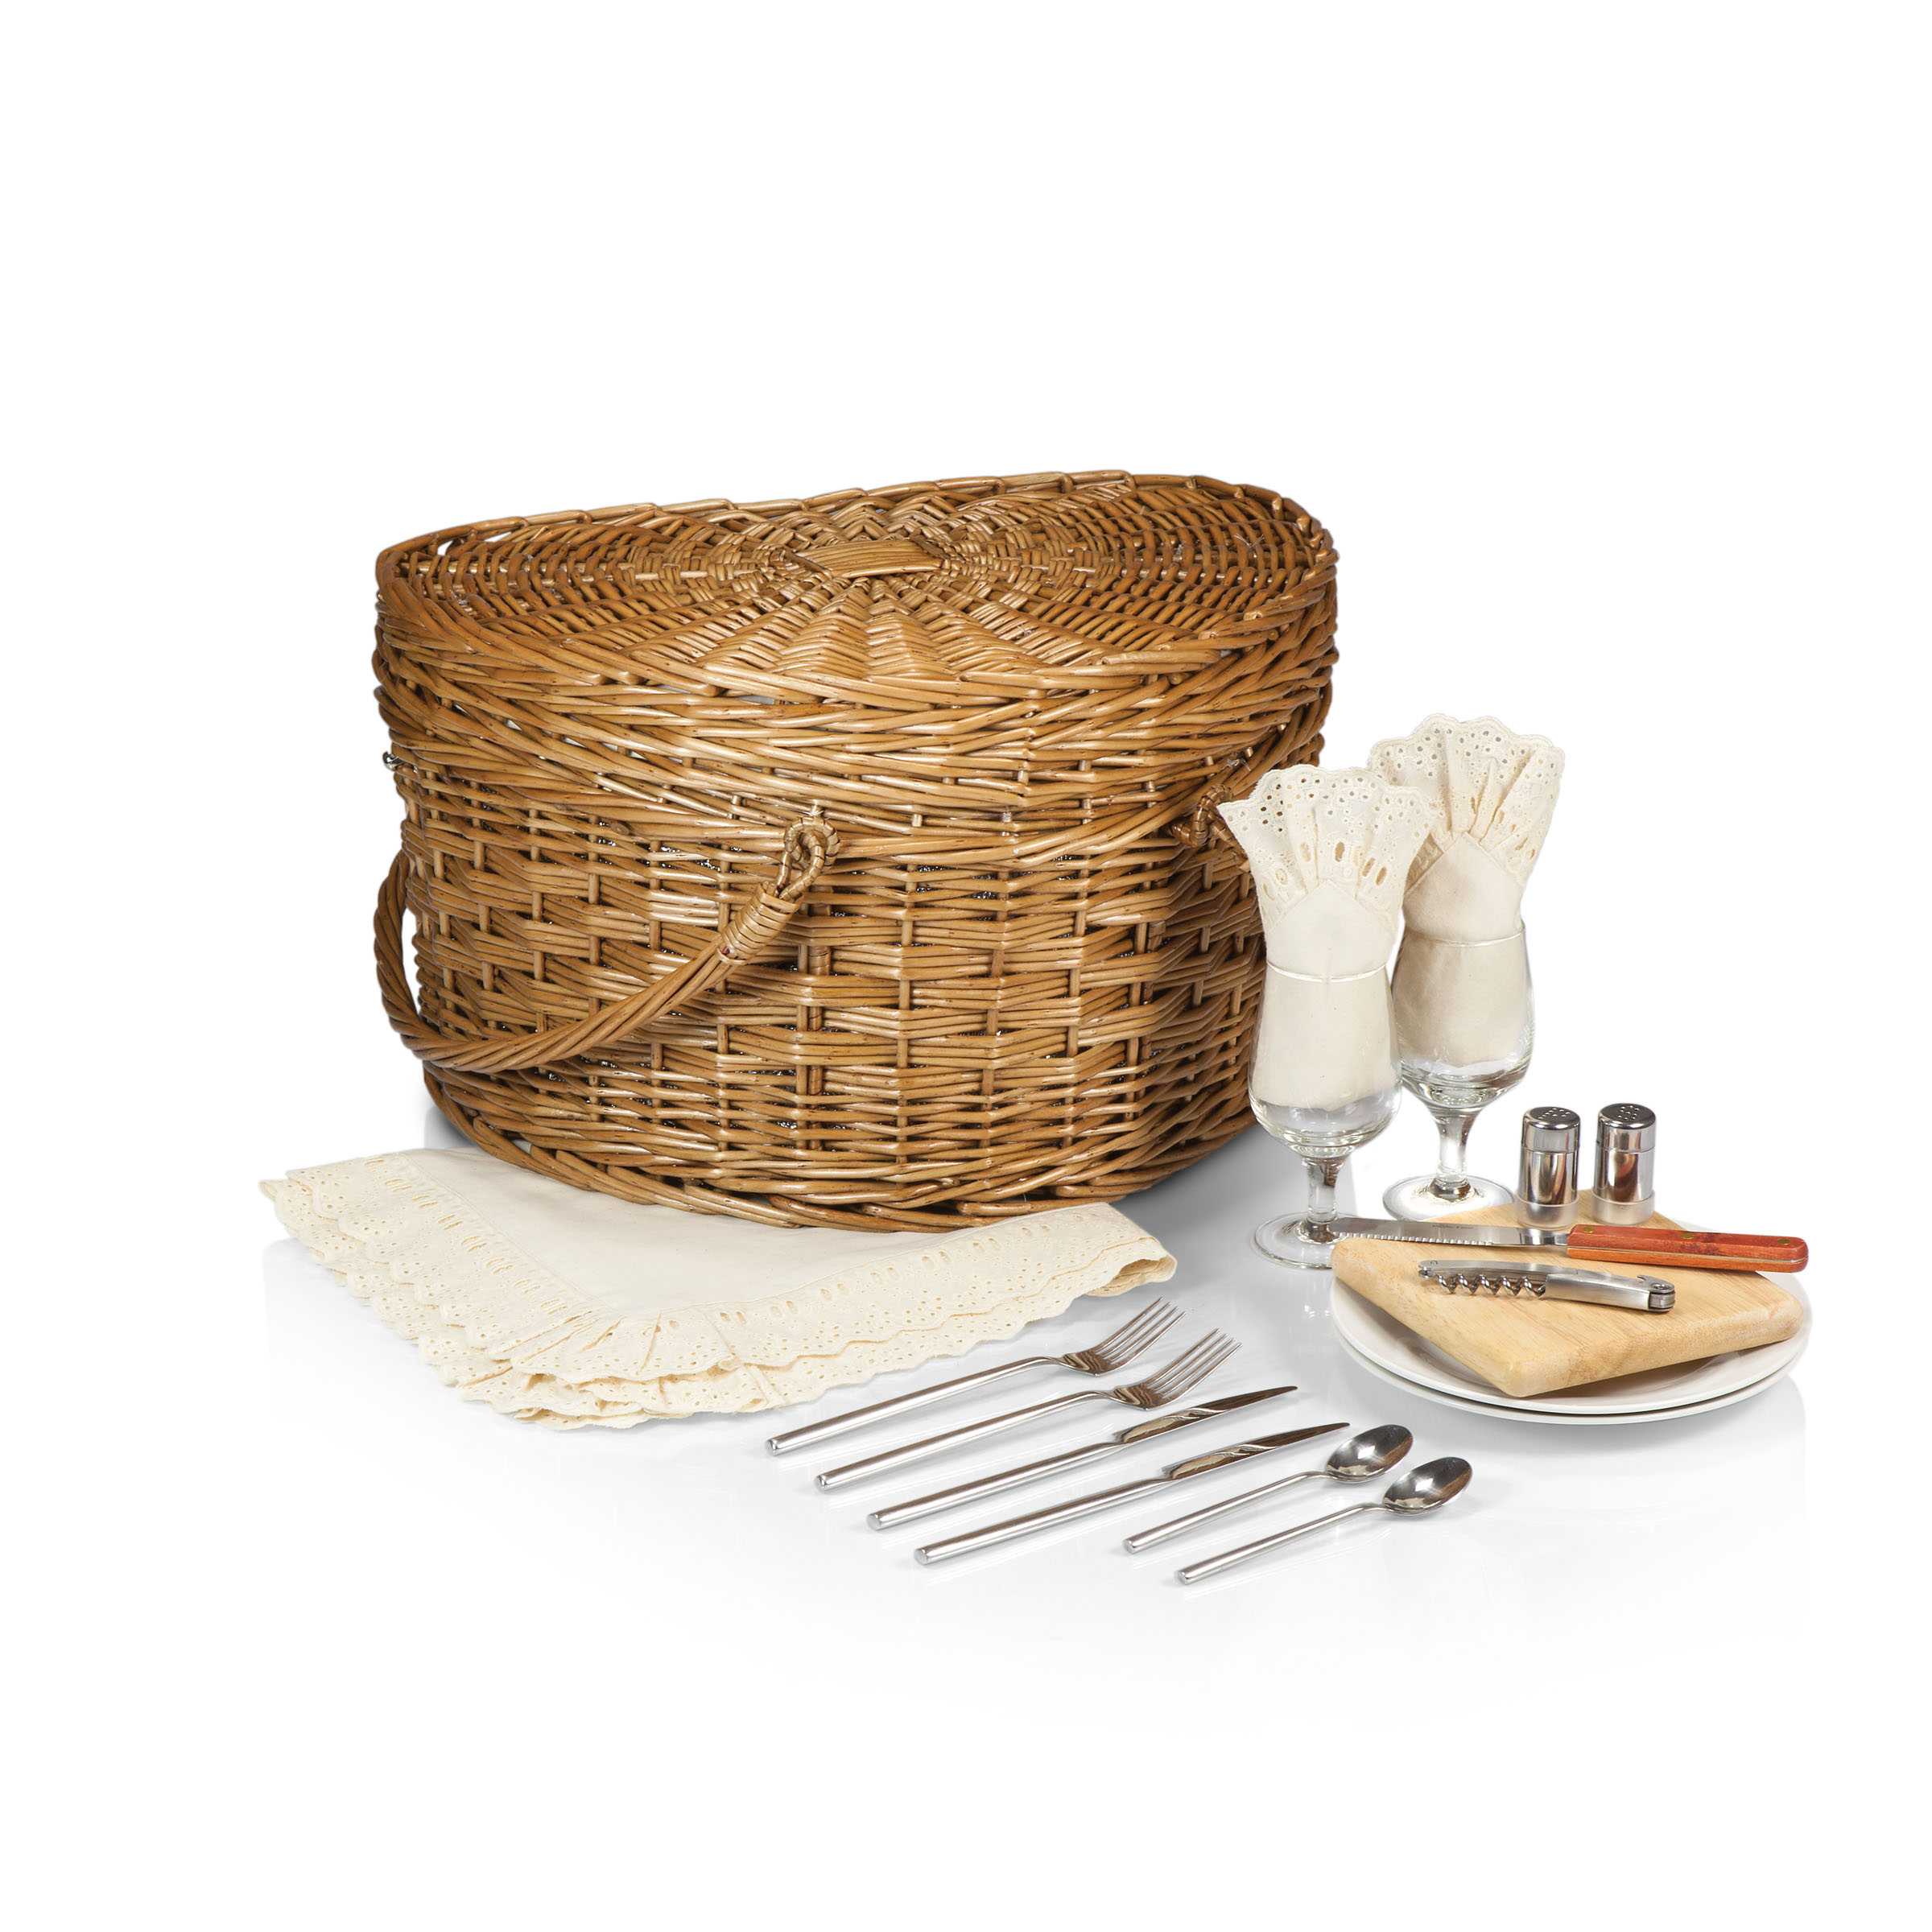 Time Woven Heart Picnic Basket for 2